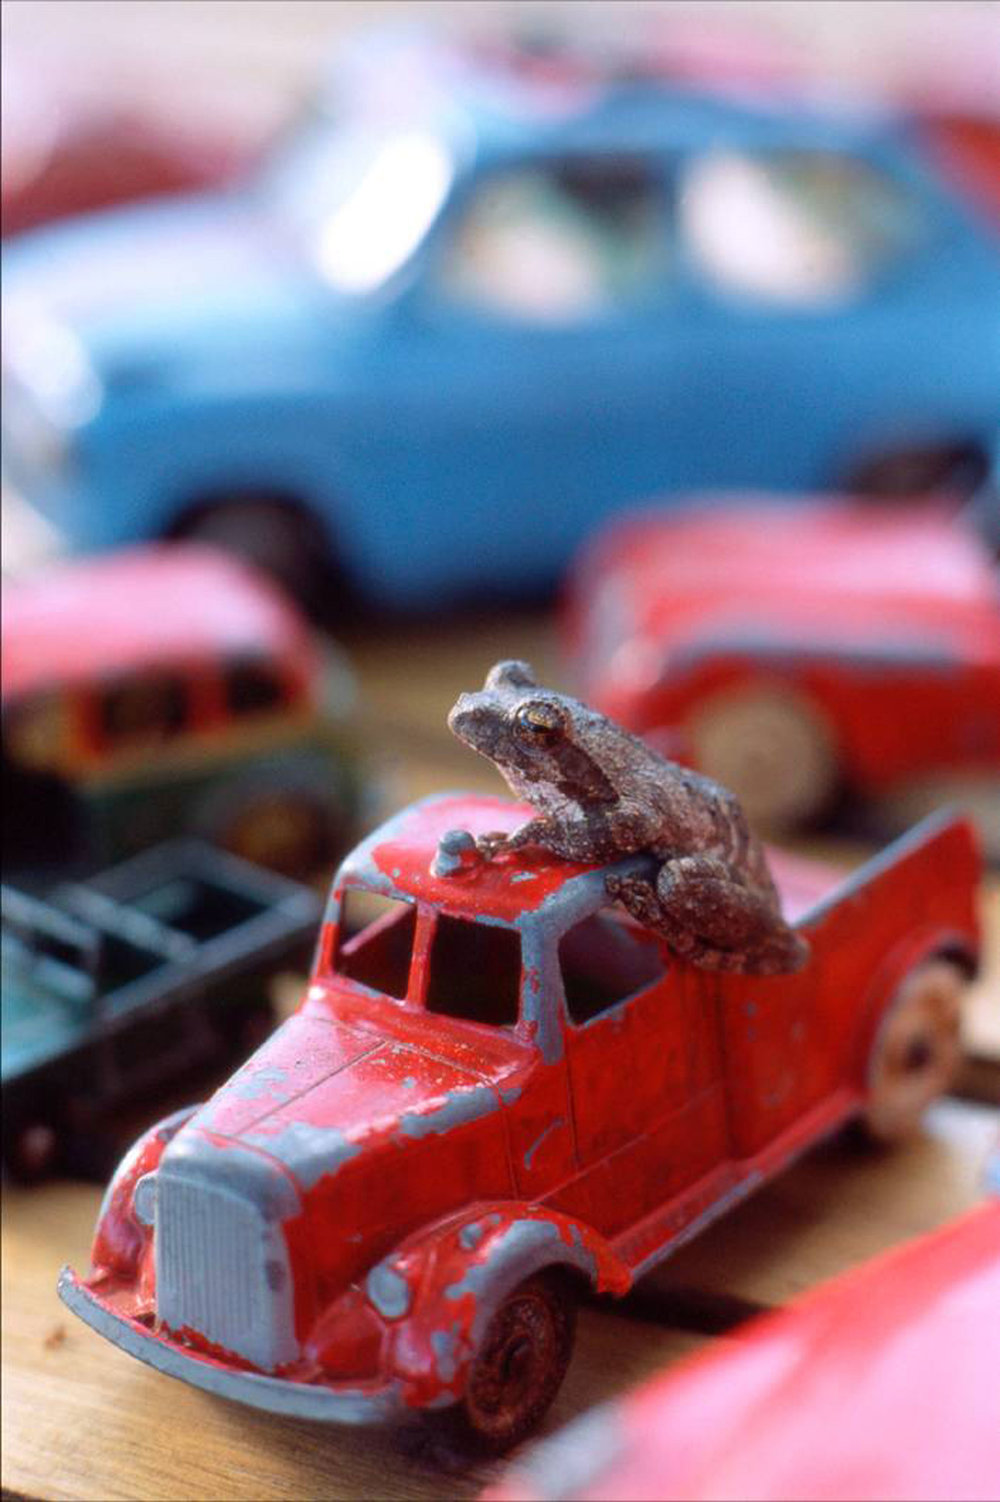 Ngala-Tented---Car-with-frog.jpg